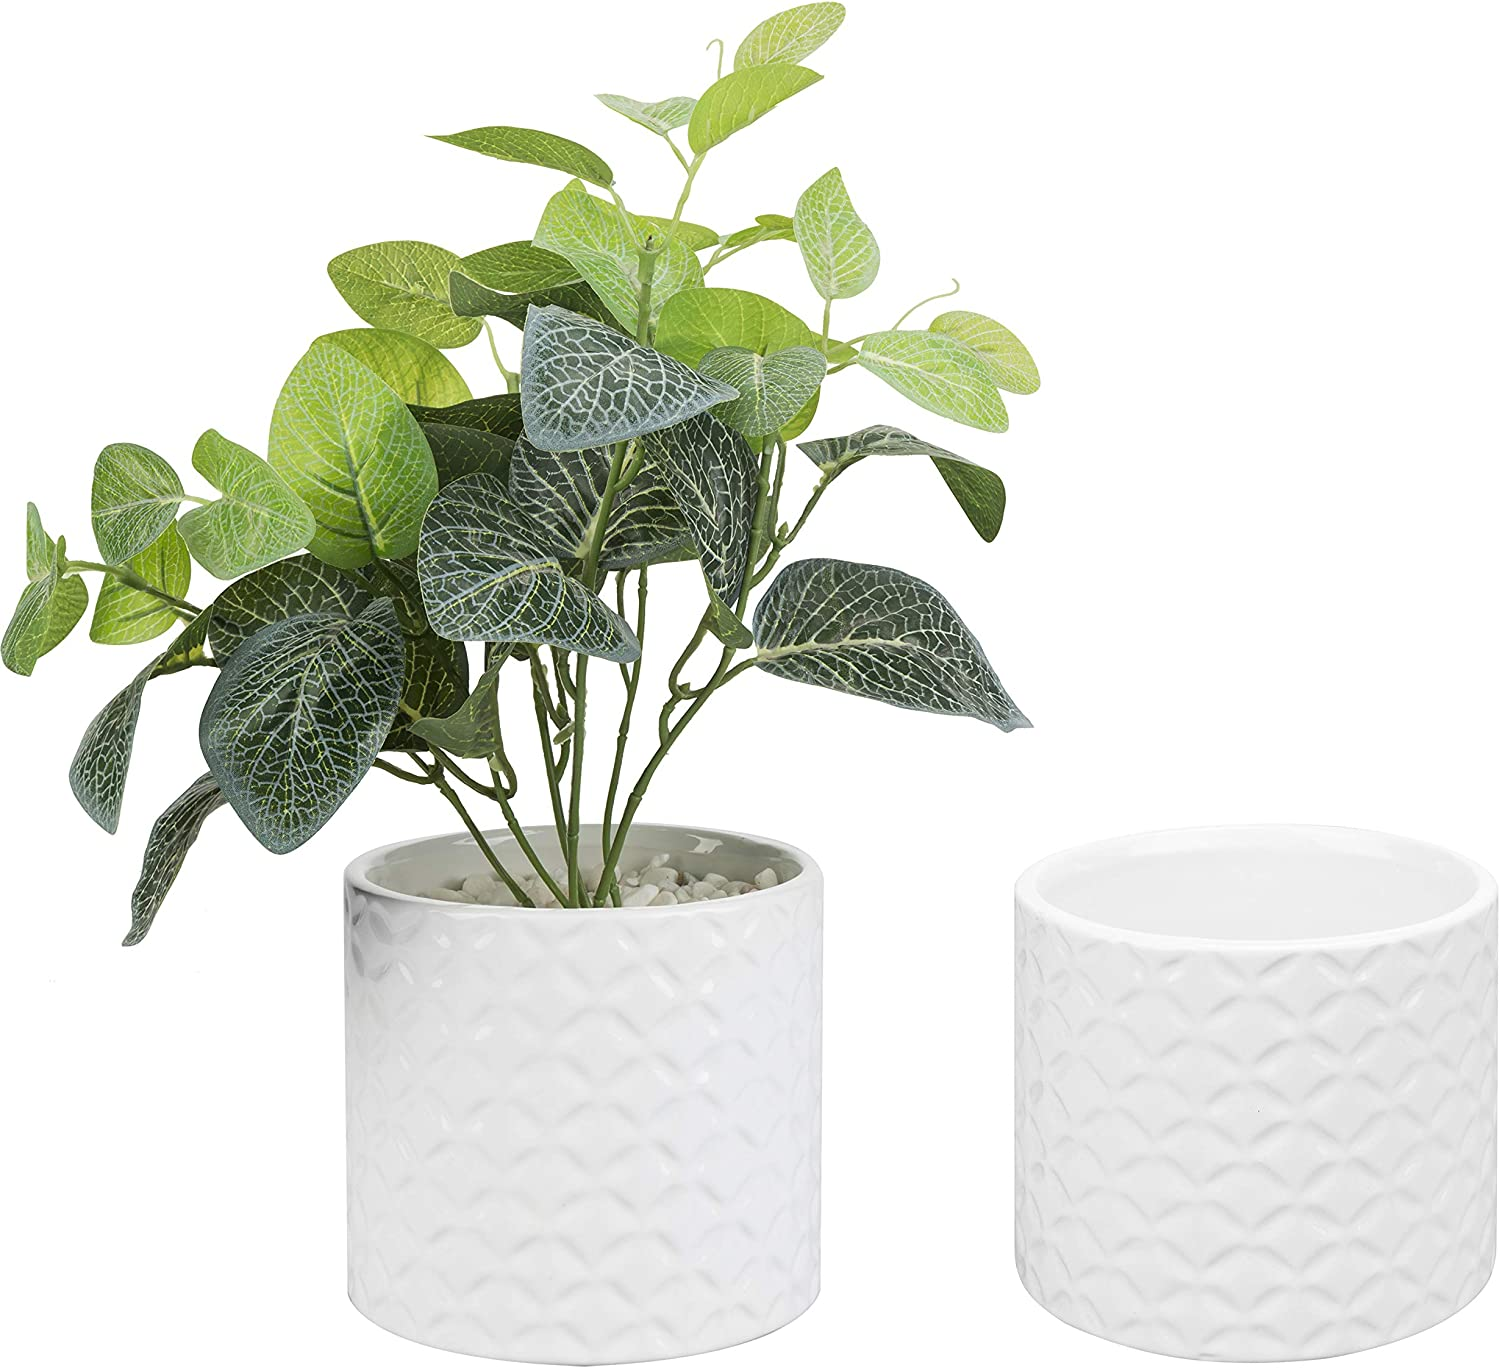 MyGift 5 Inch White Ceramic Round Planter Pot with Diamond Texture, Set of 2